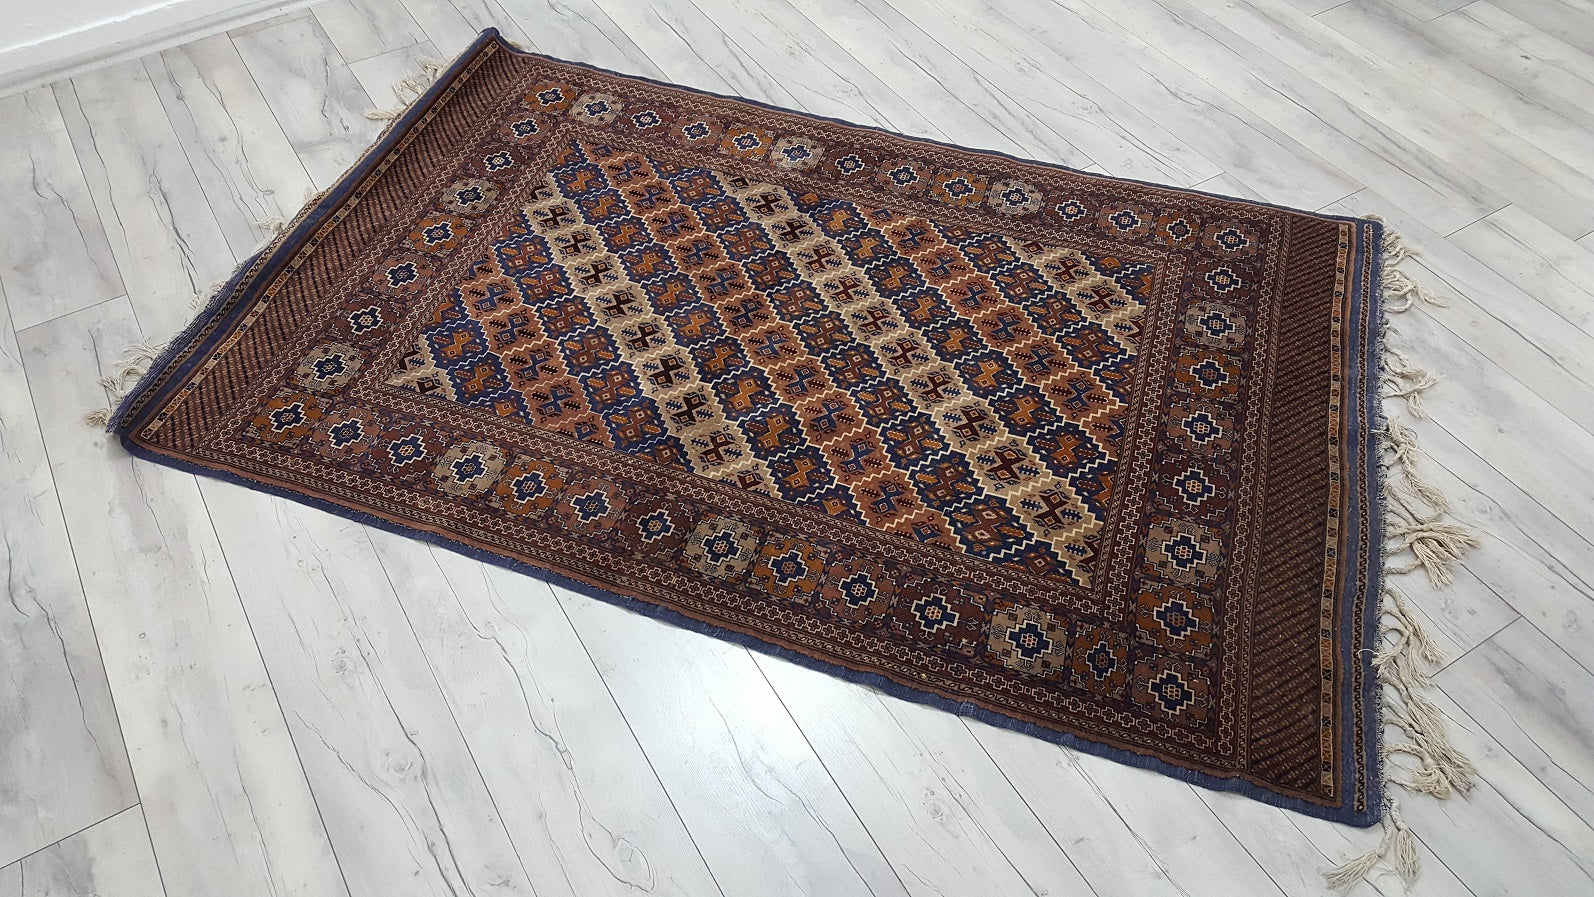 Persian Rug with Lovely Earthy Tones 4x6,4 ft.